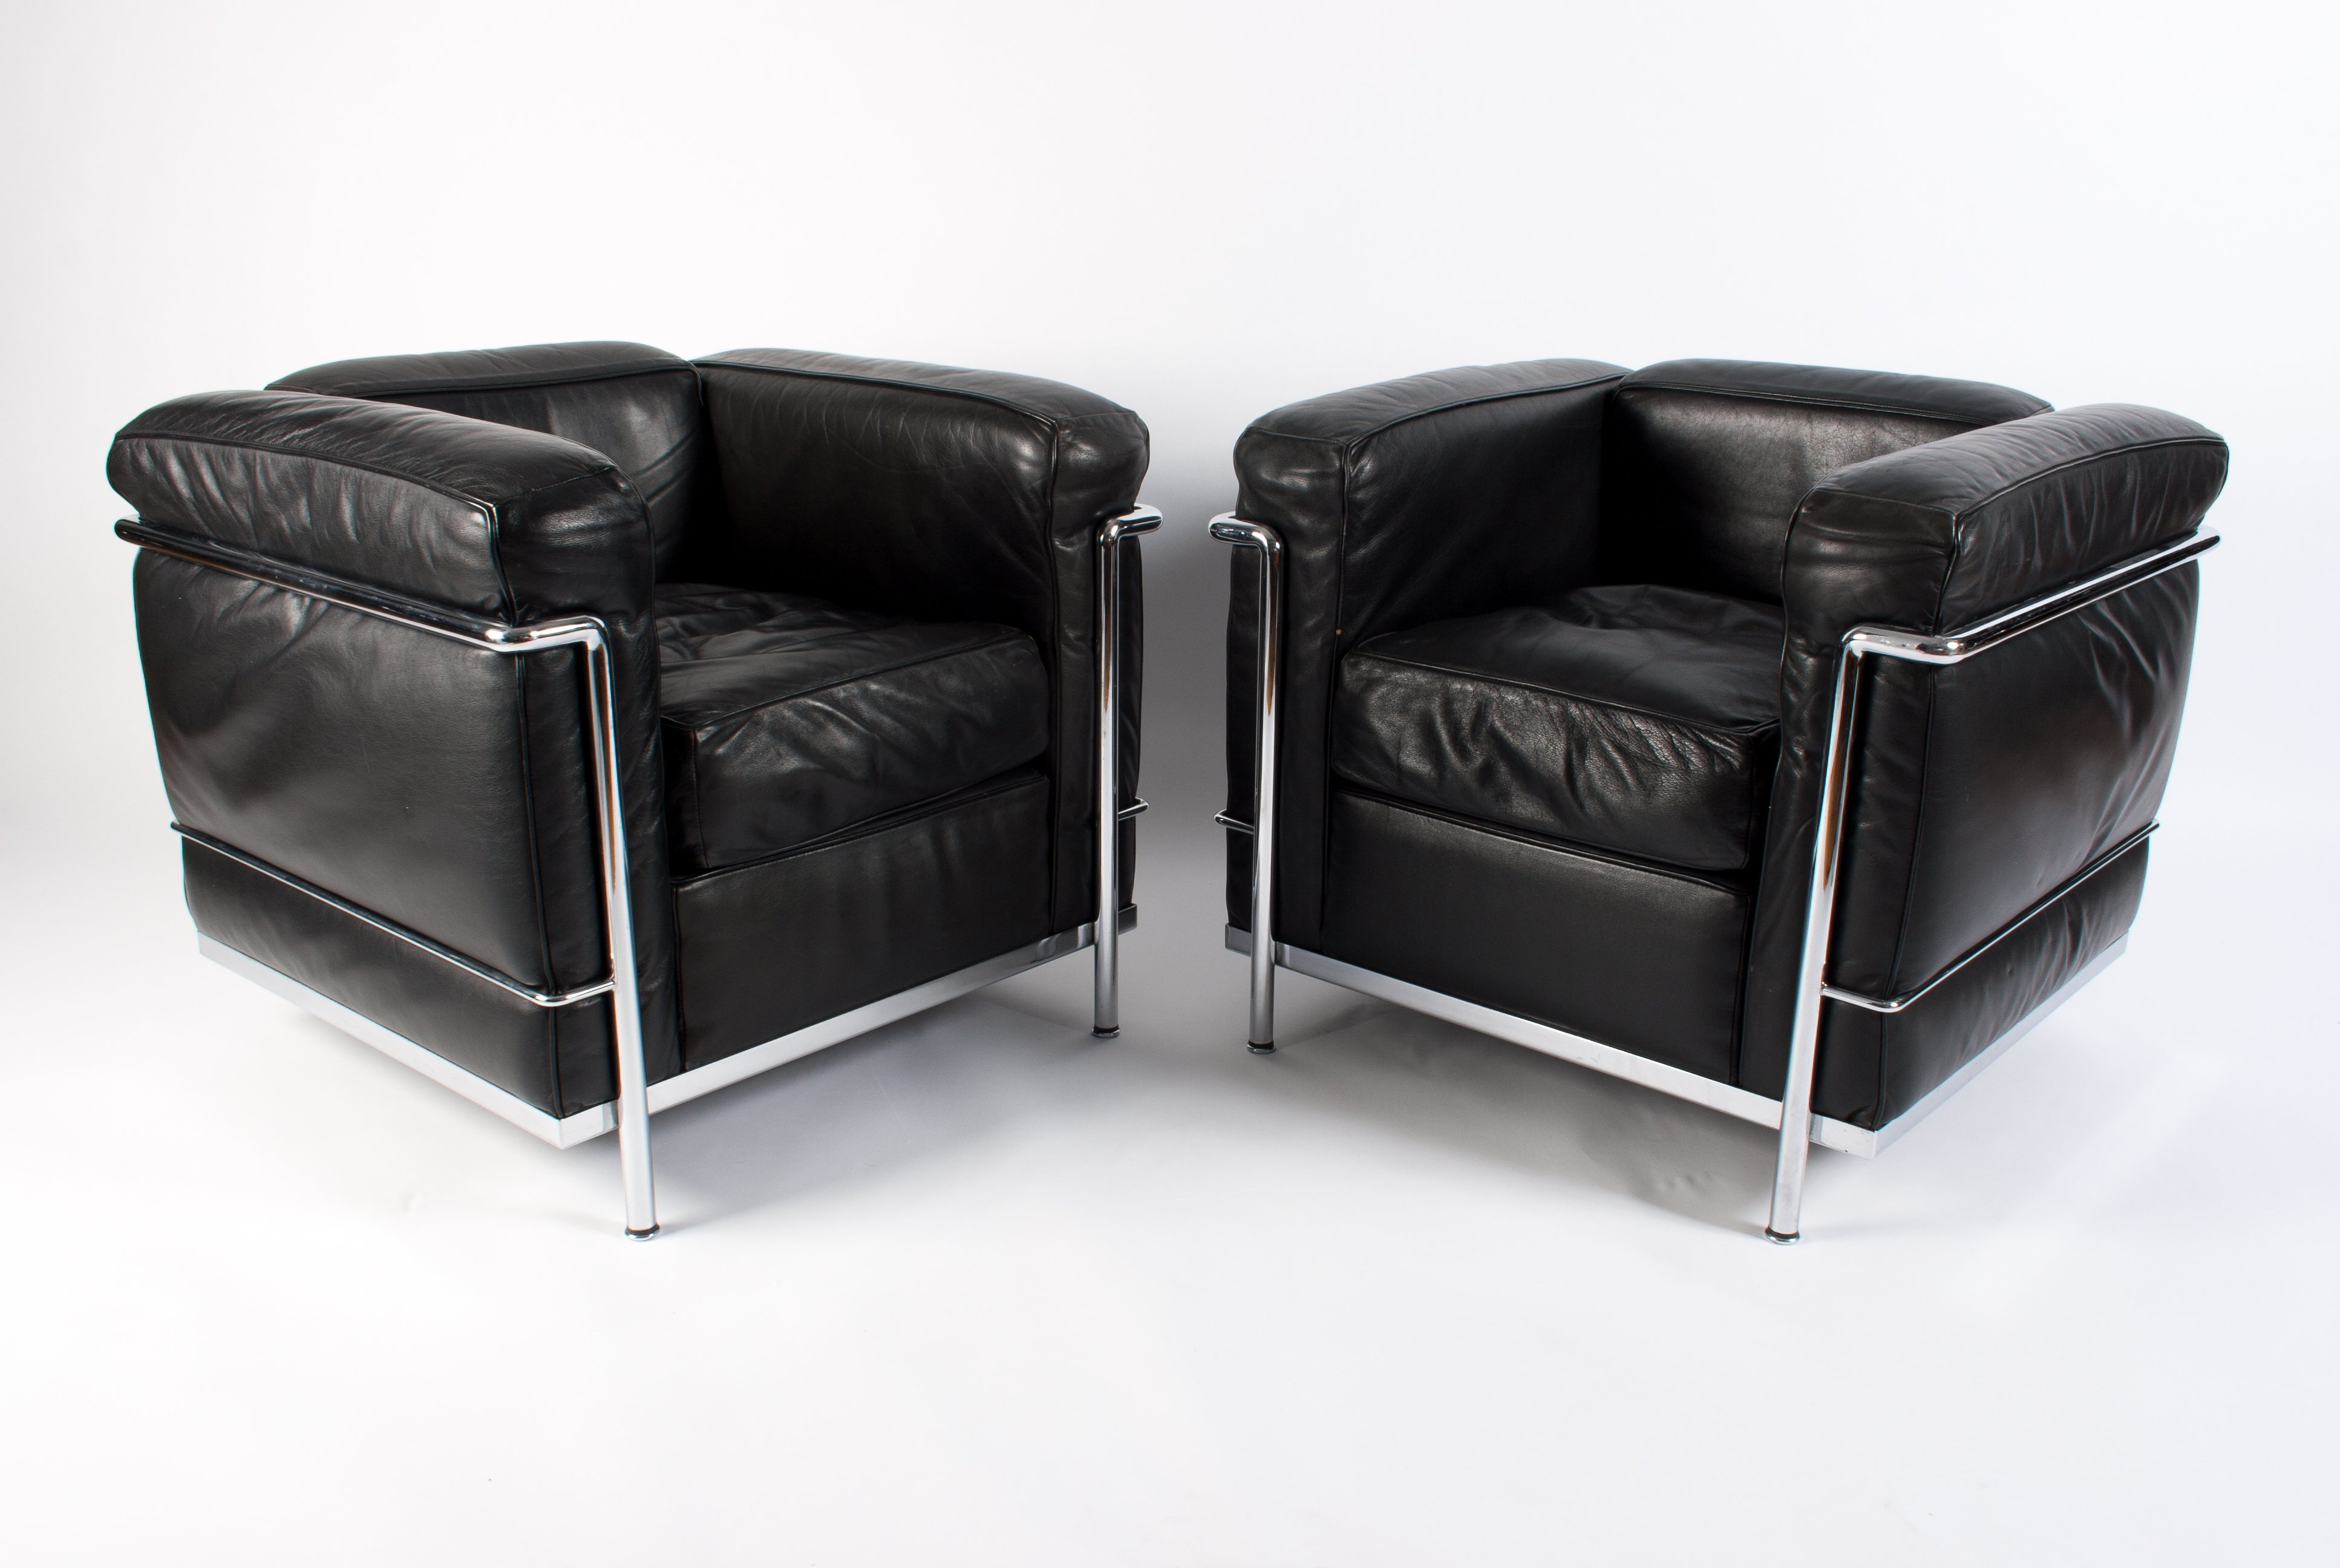 https://img.vntg.com/large/1517225144708/pair-of-black-leather-chrome-lc2-lounge-chairs-by-le-corbusier-for-cassina-1980s.jpg